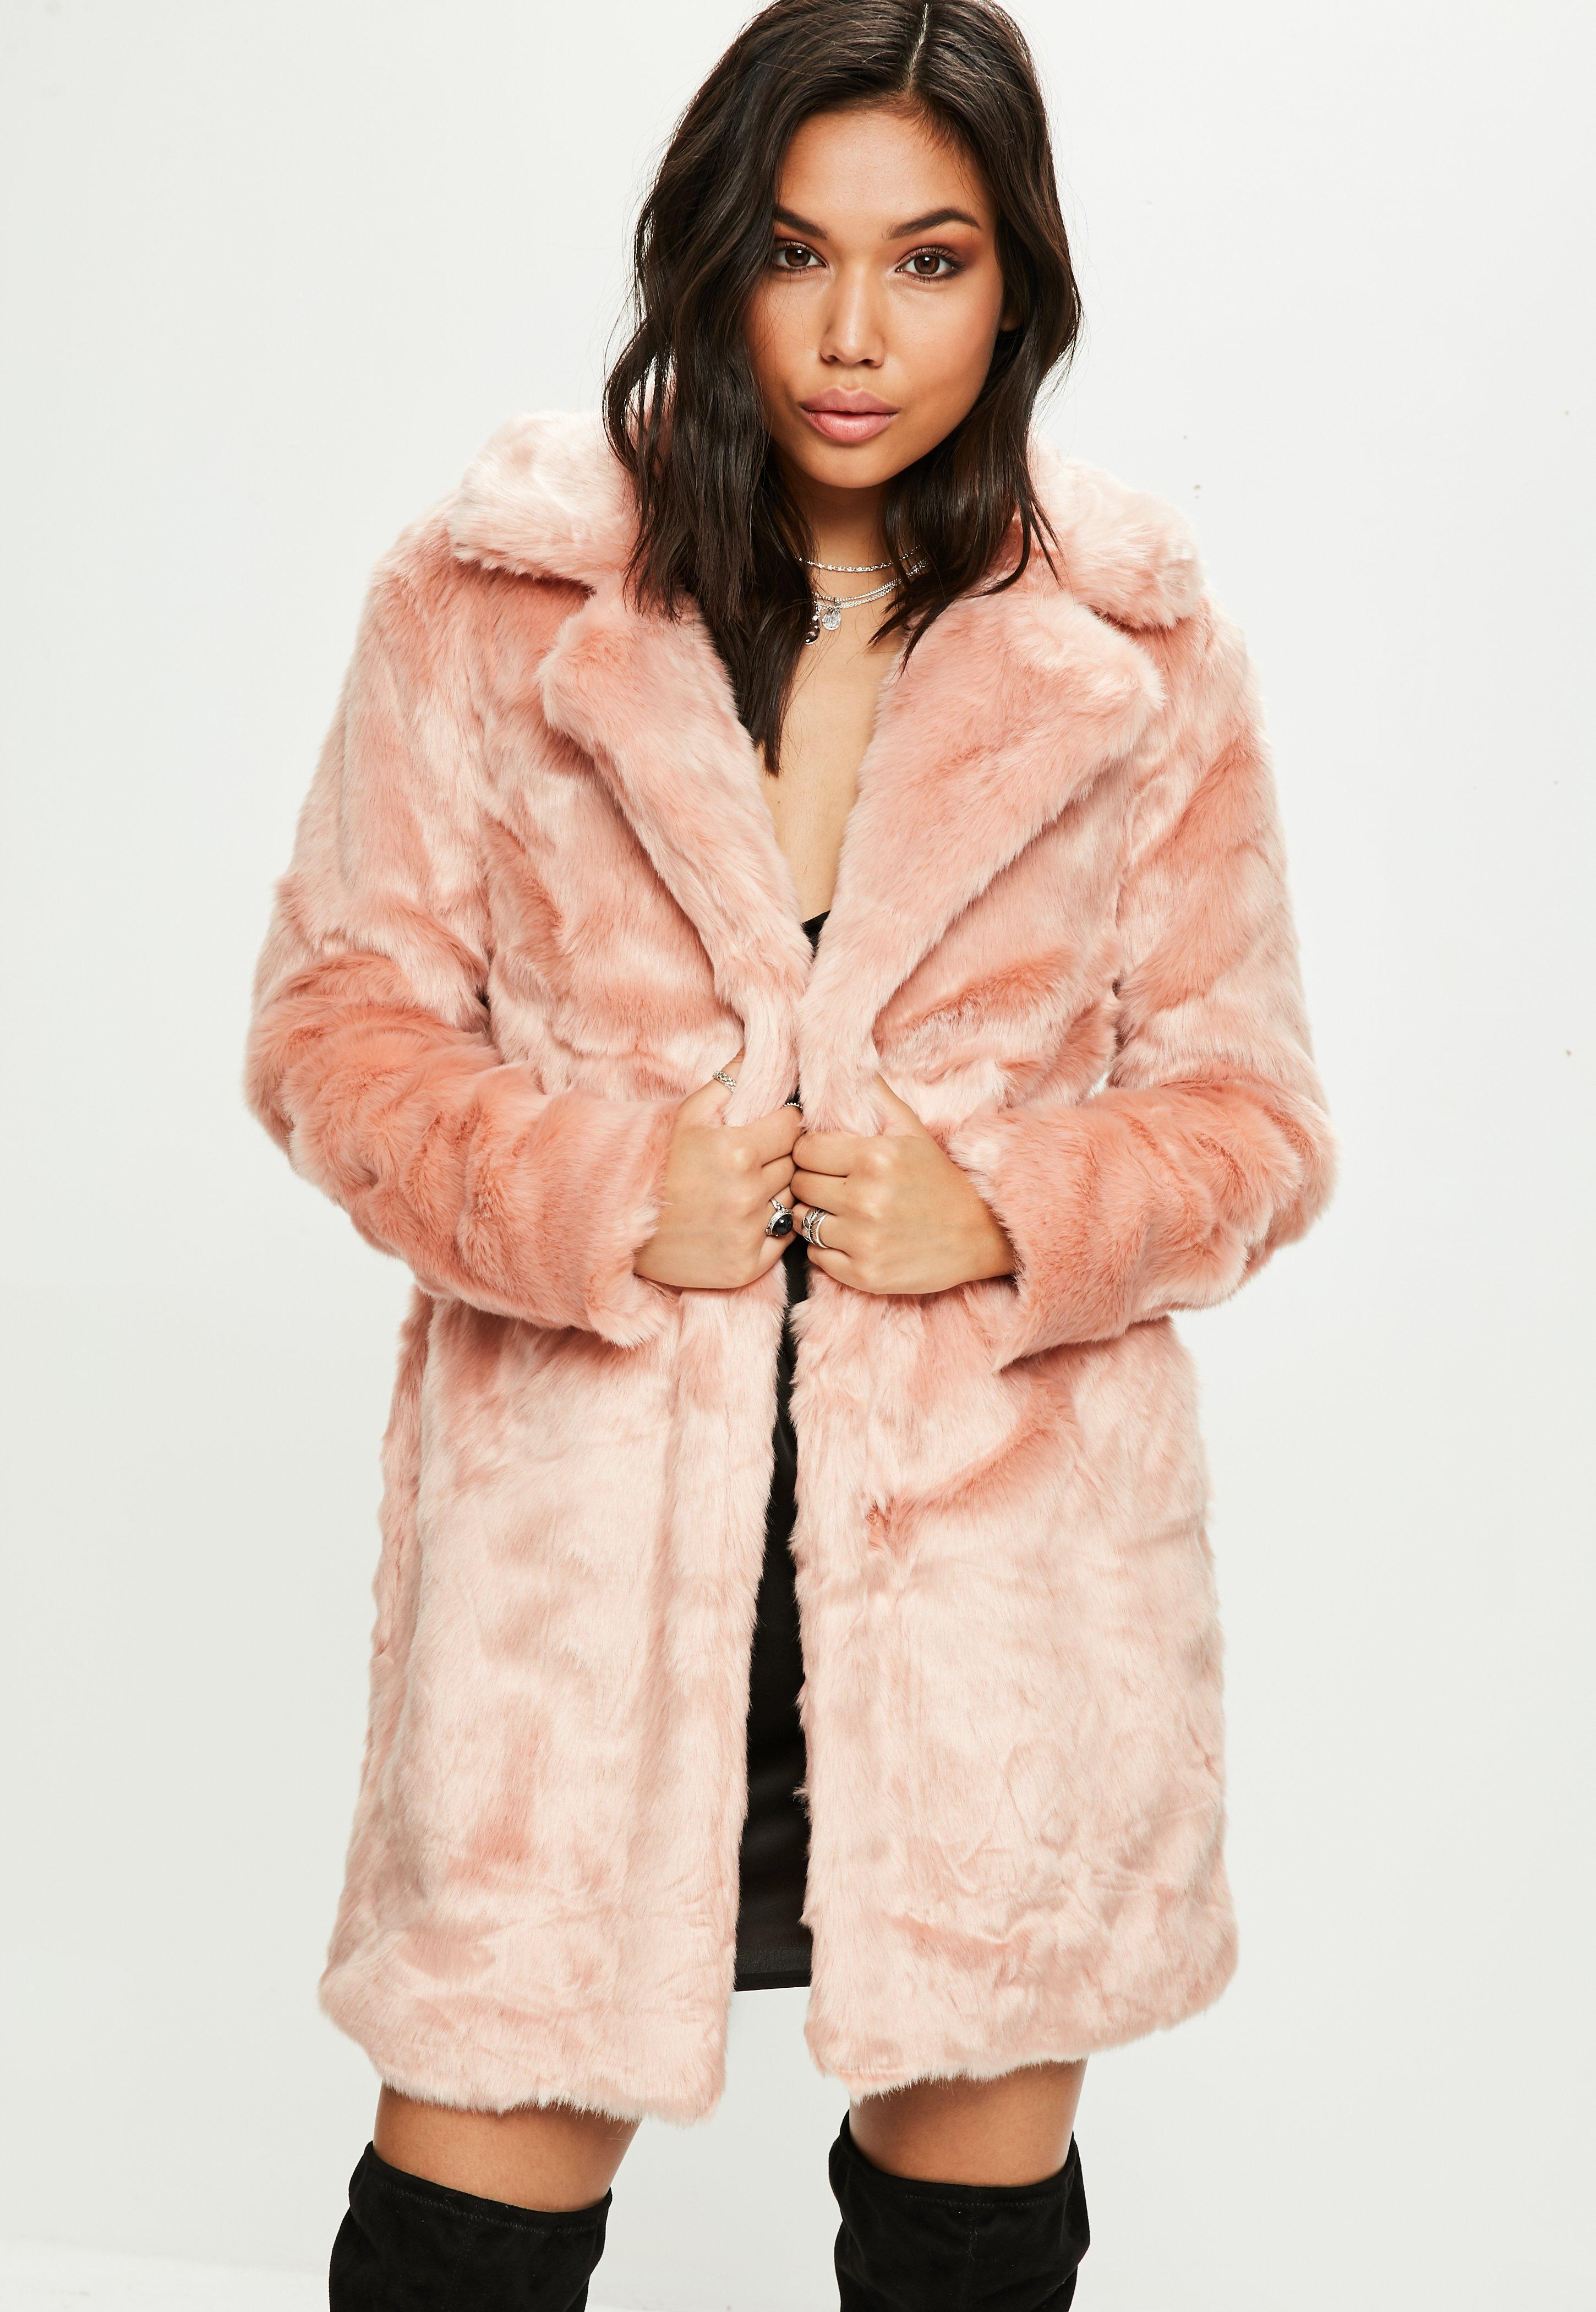 787b788dcaed Missguided Pink Faux Fur Coat in Pink - Lyst